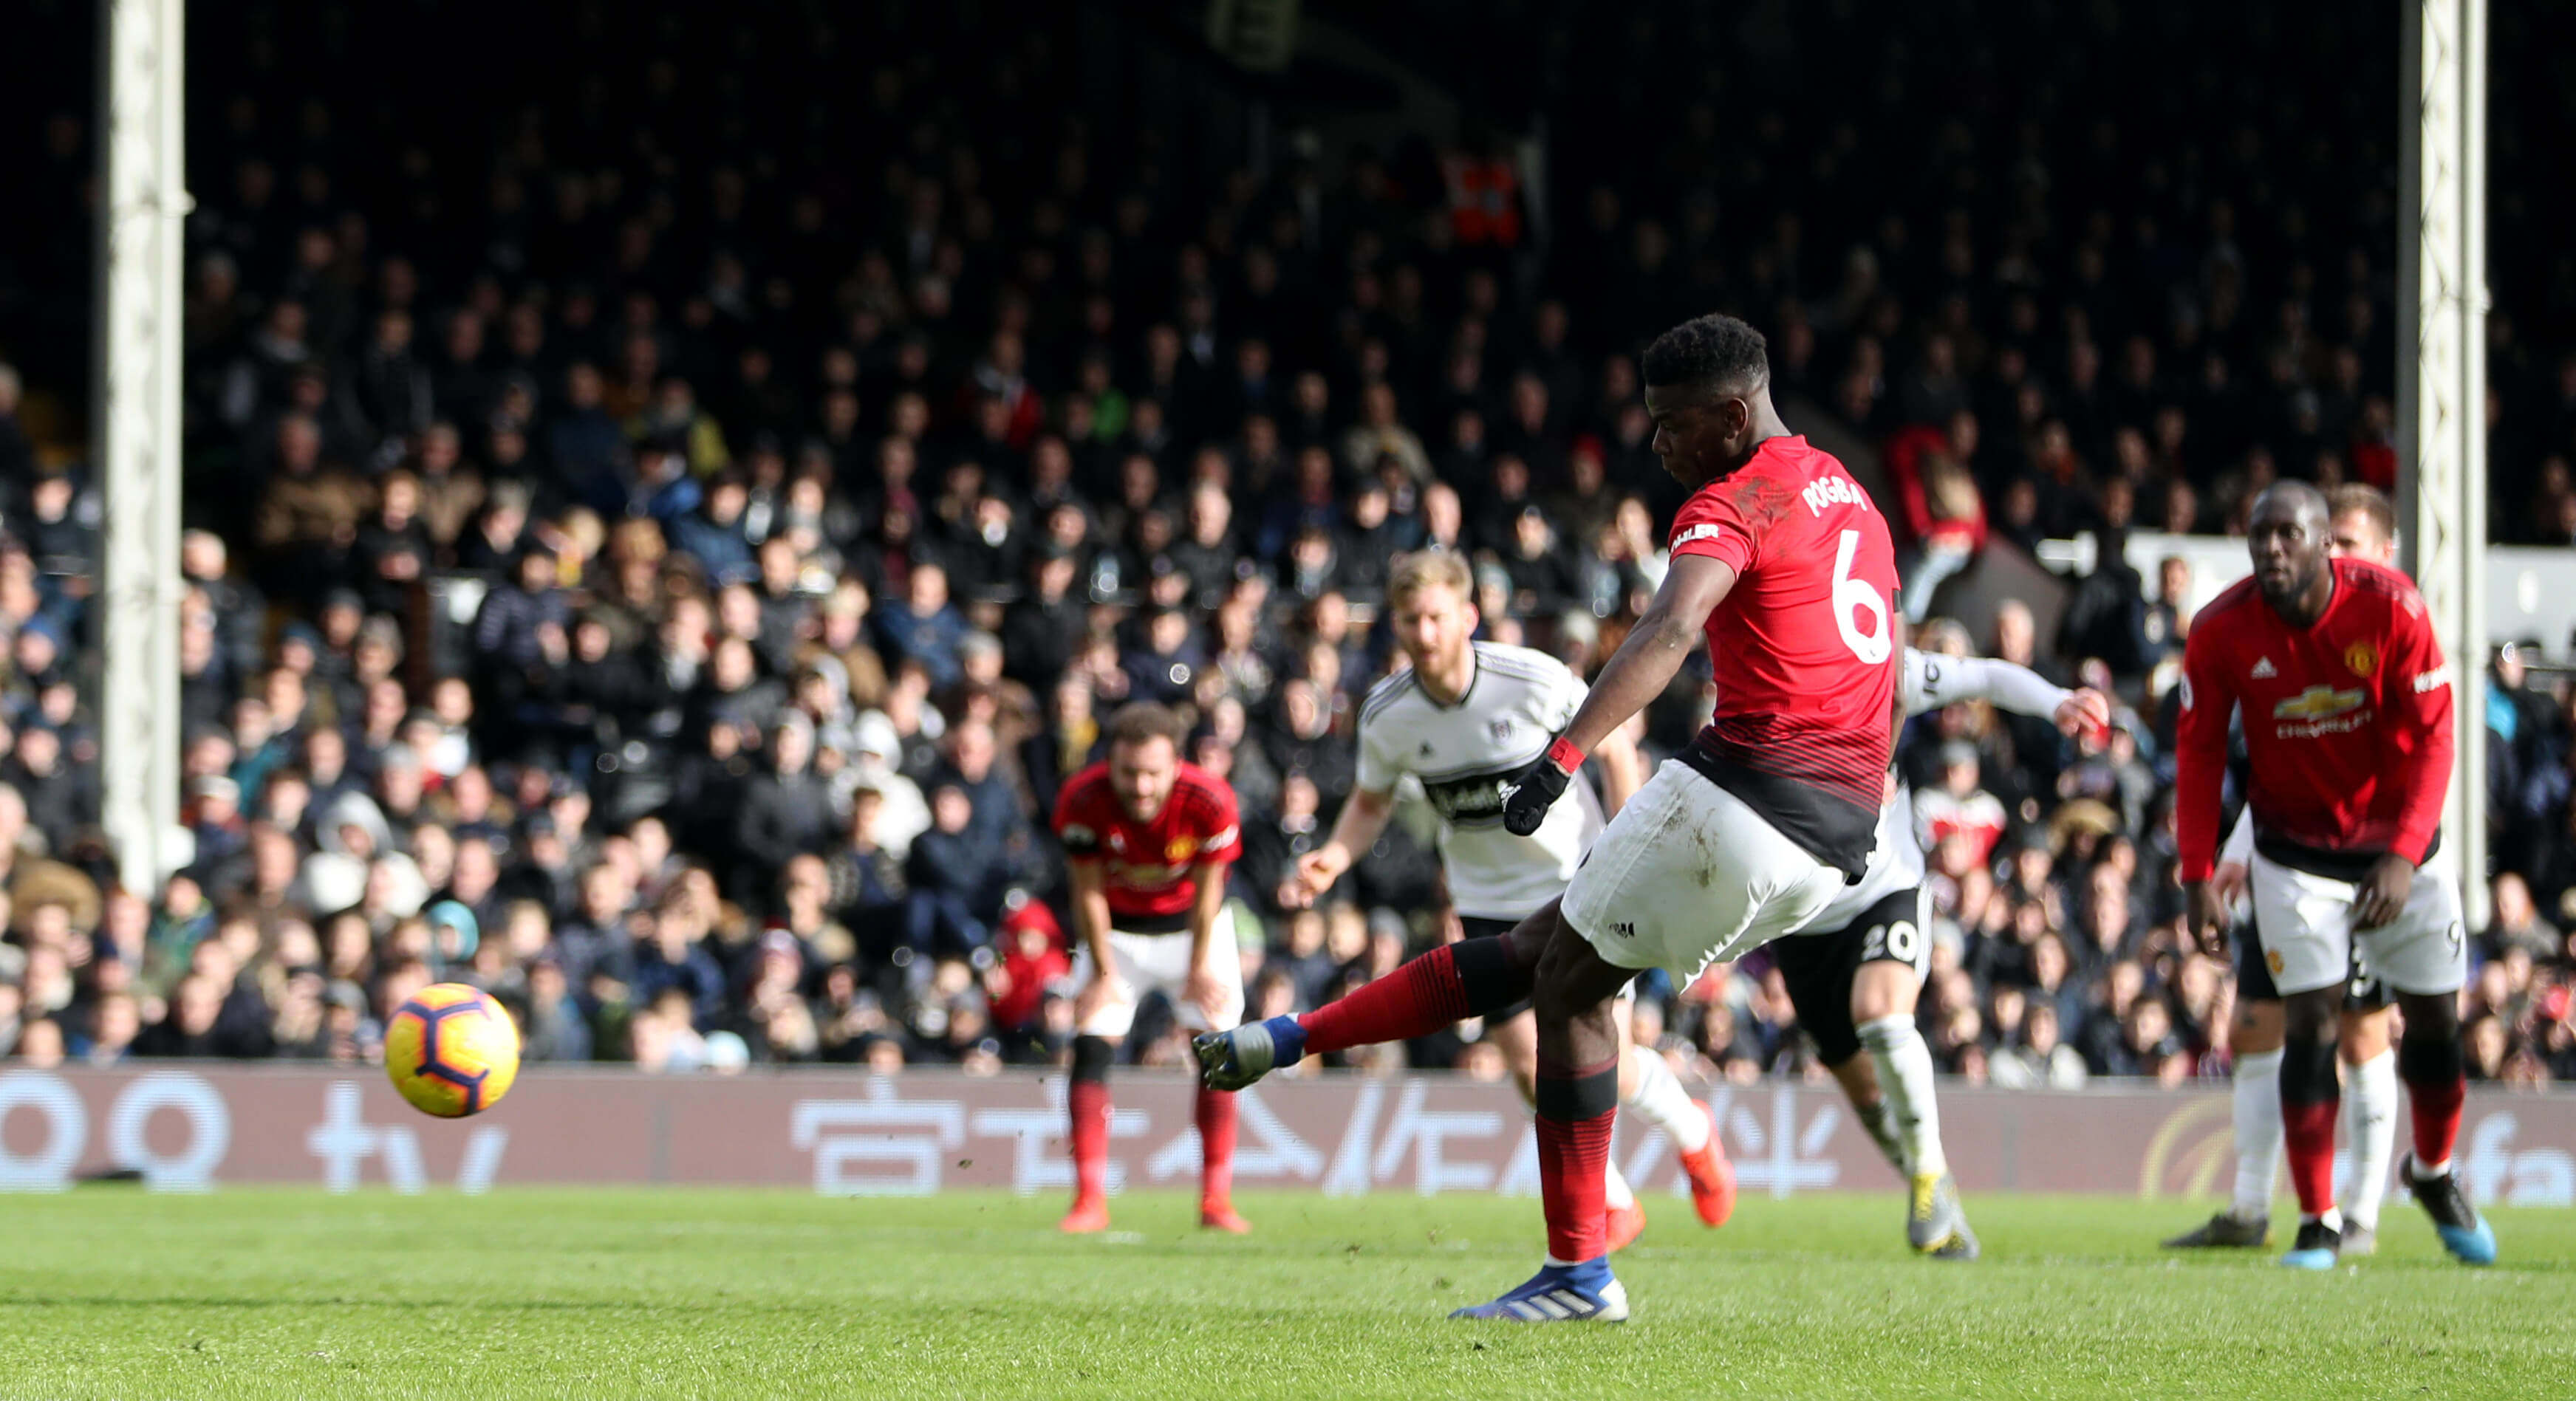 Fulham 0-3 United: Five things we learned